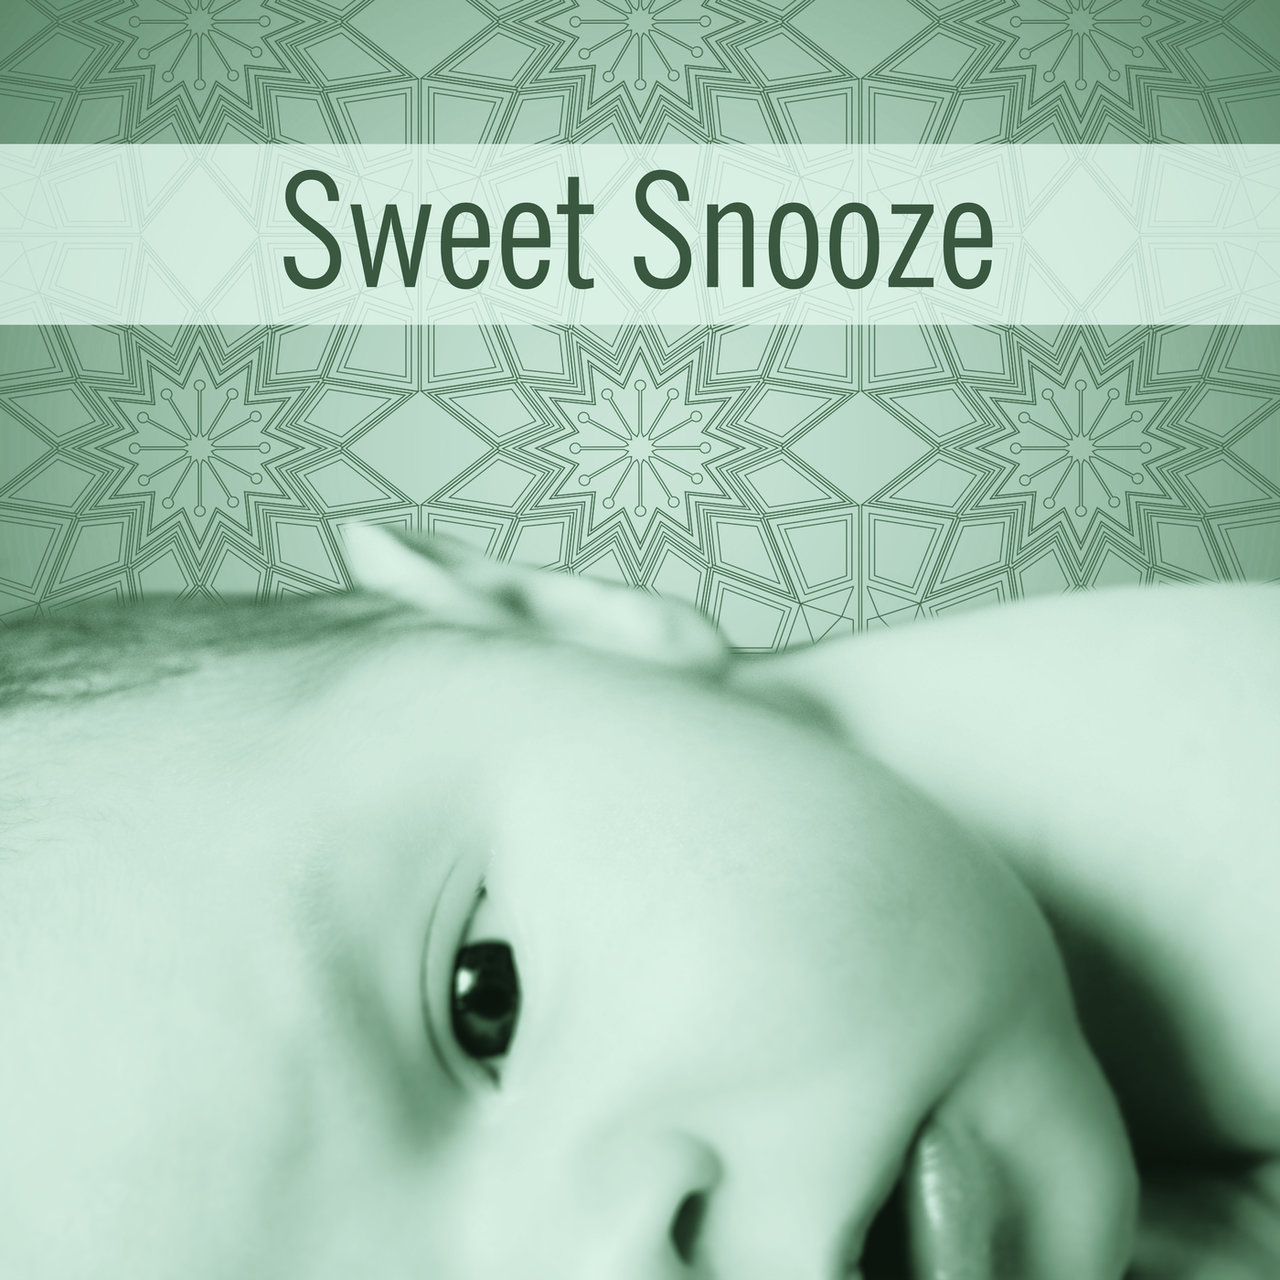 Newborn Bedtime Tidal Listen To Sweet Snooze Relaxation Lullabies For Sleep